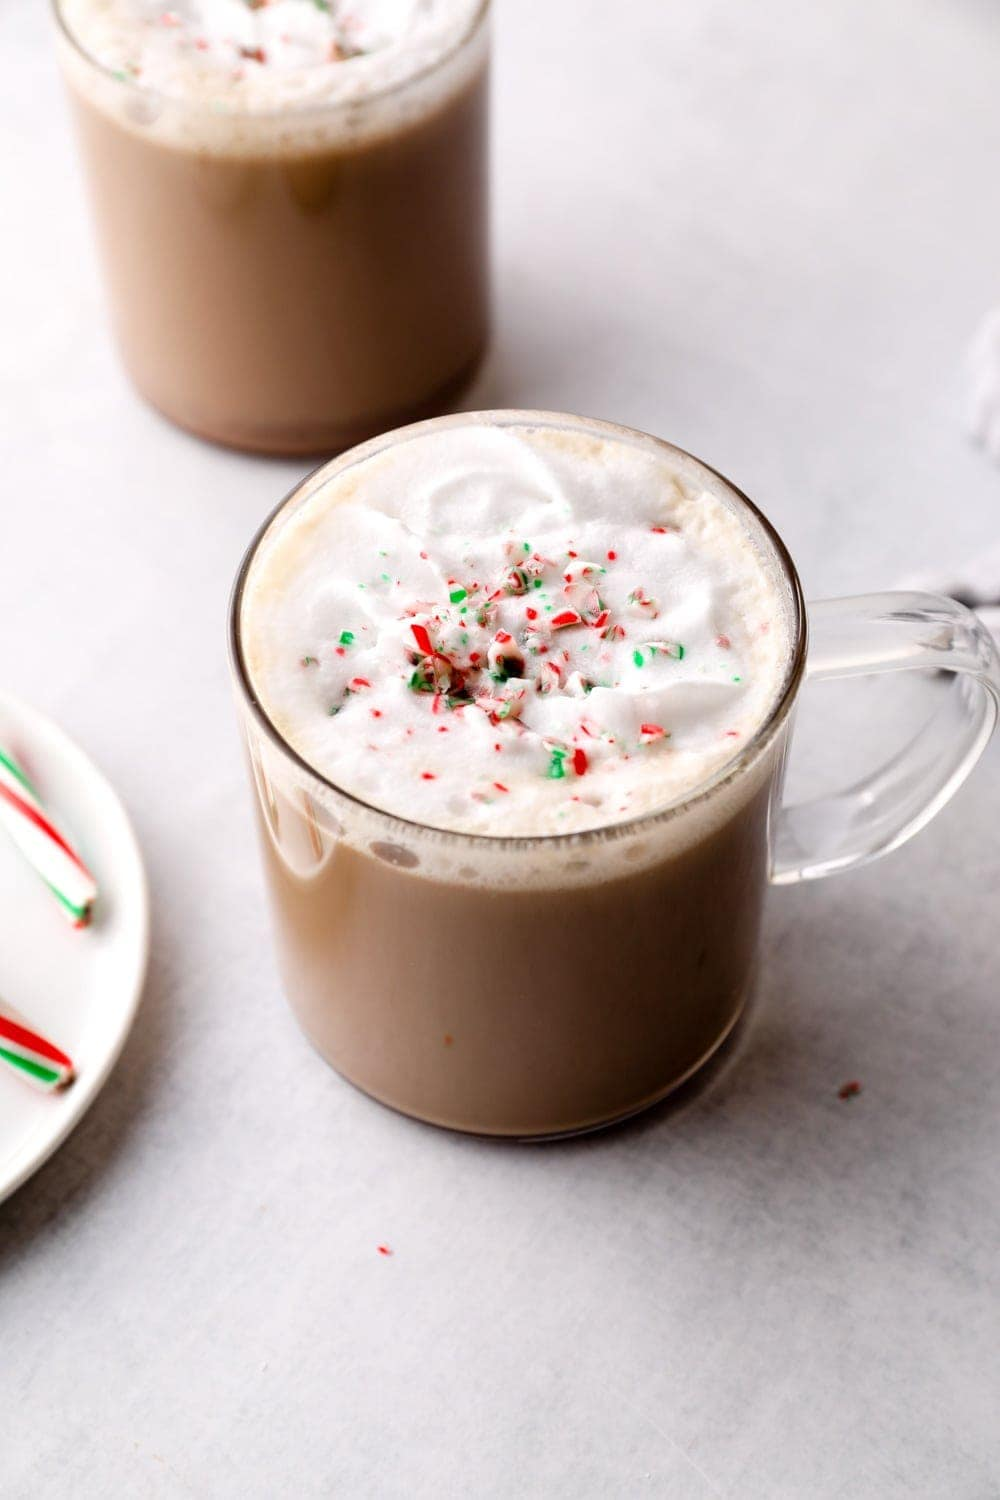 Peppermint mocha topped with coconut whipped cream and crushed candy canes.